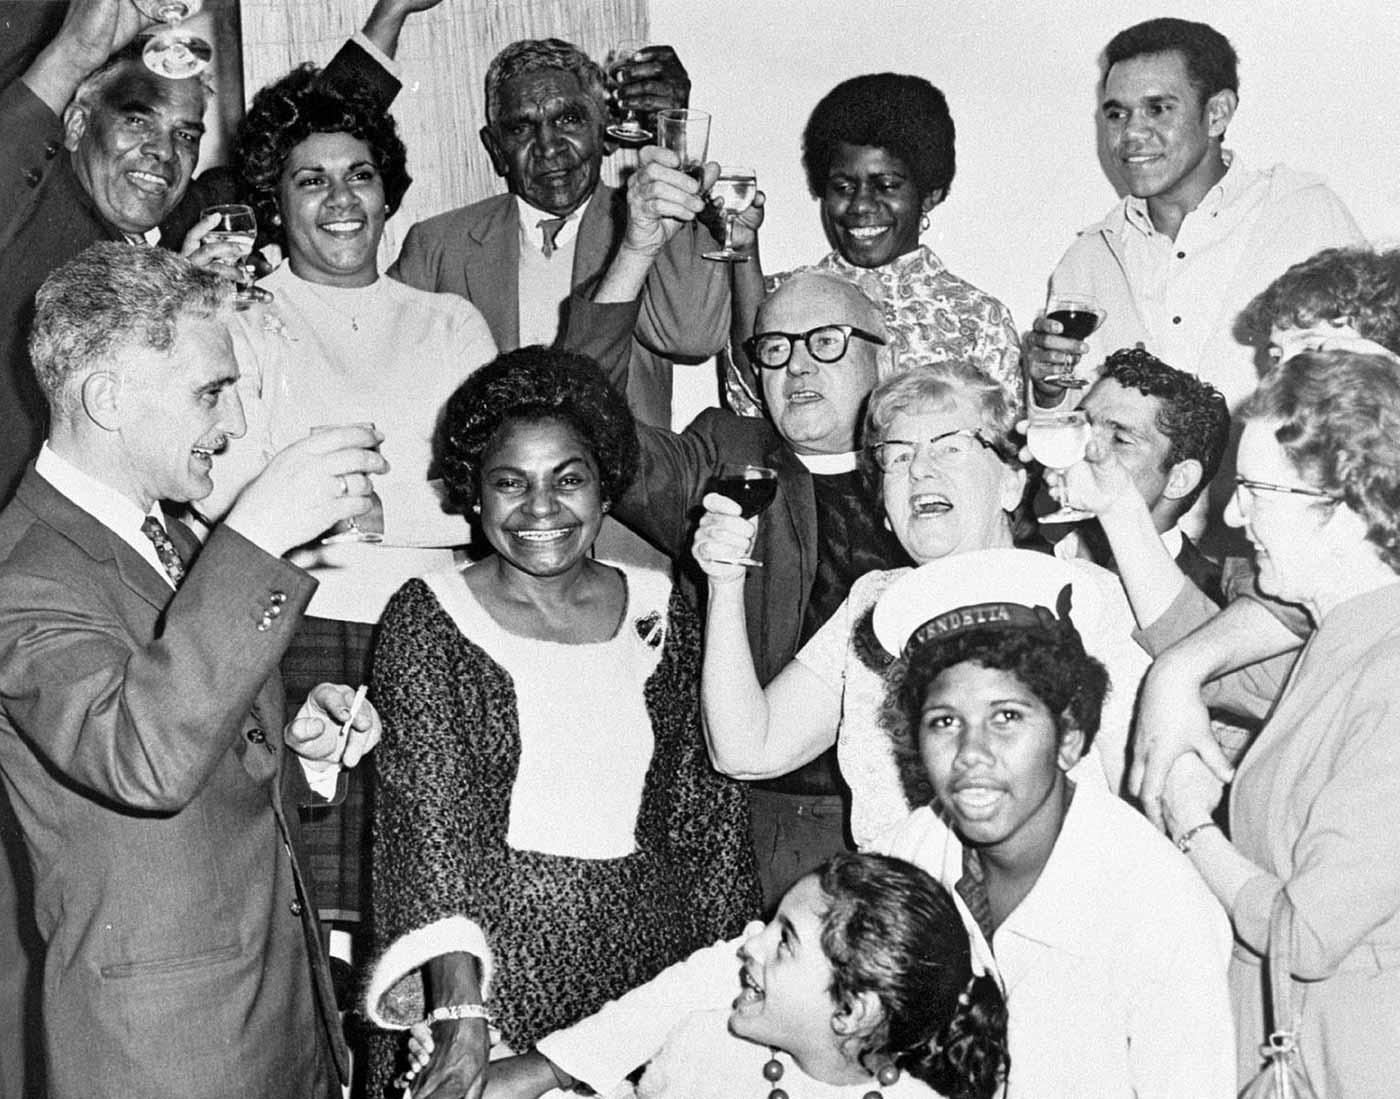 Black and white photo of a group of people cheering and raising their drinks in celebration.